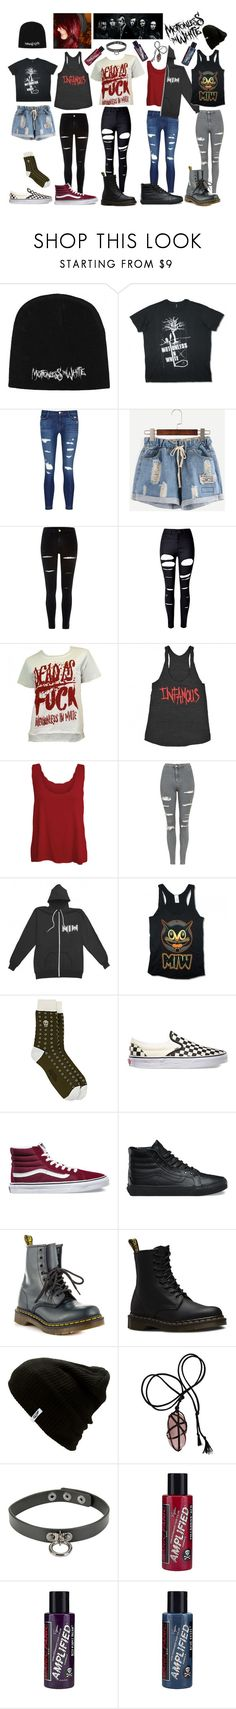 """week of MOTIONLESS IN WHITE!"" by hunterscloset ❤ liked on Polyvore featuring J Brand, River Island, WithChic, WearAll, Topshop, Alexander McQueen, Vans, Dr. Martens and Manic Panic NYC"